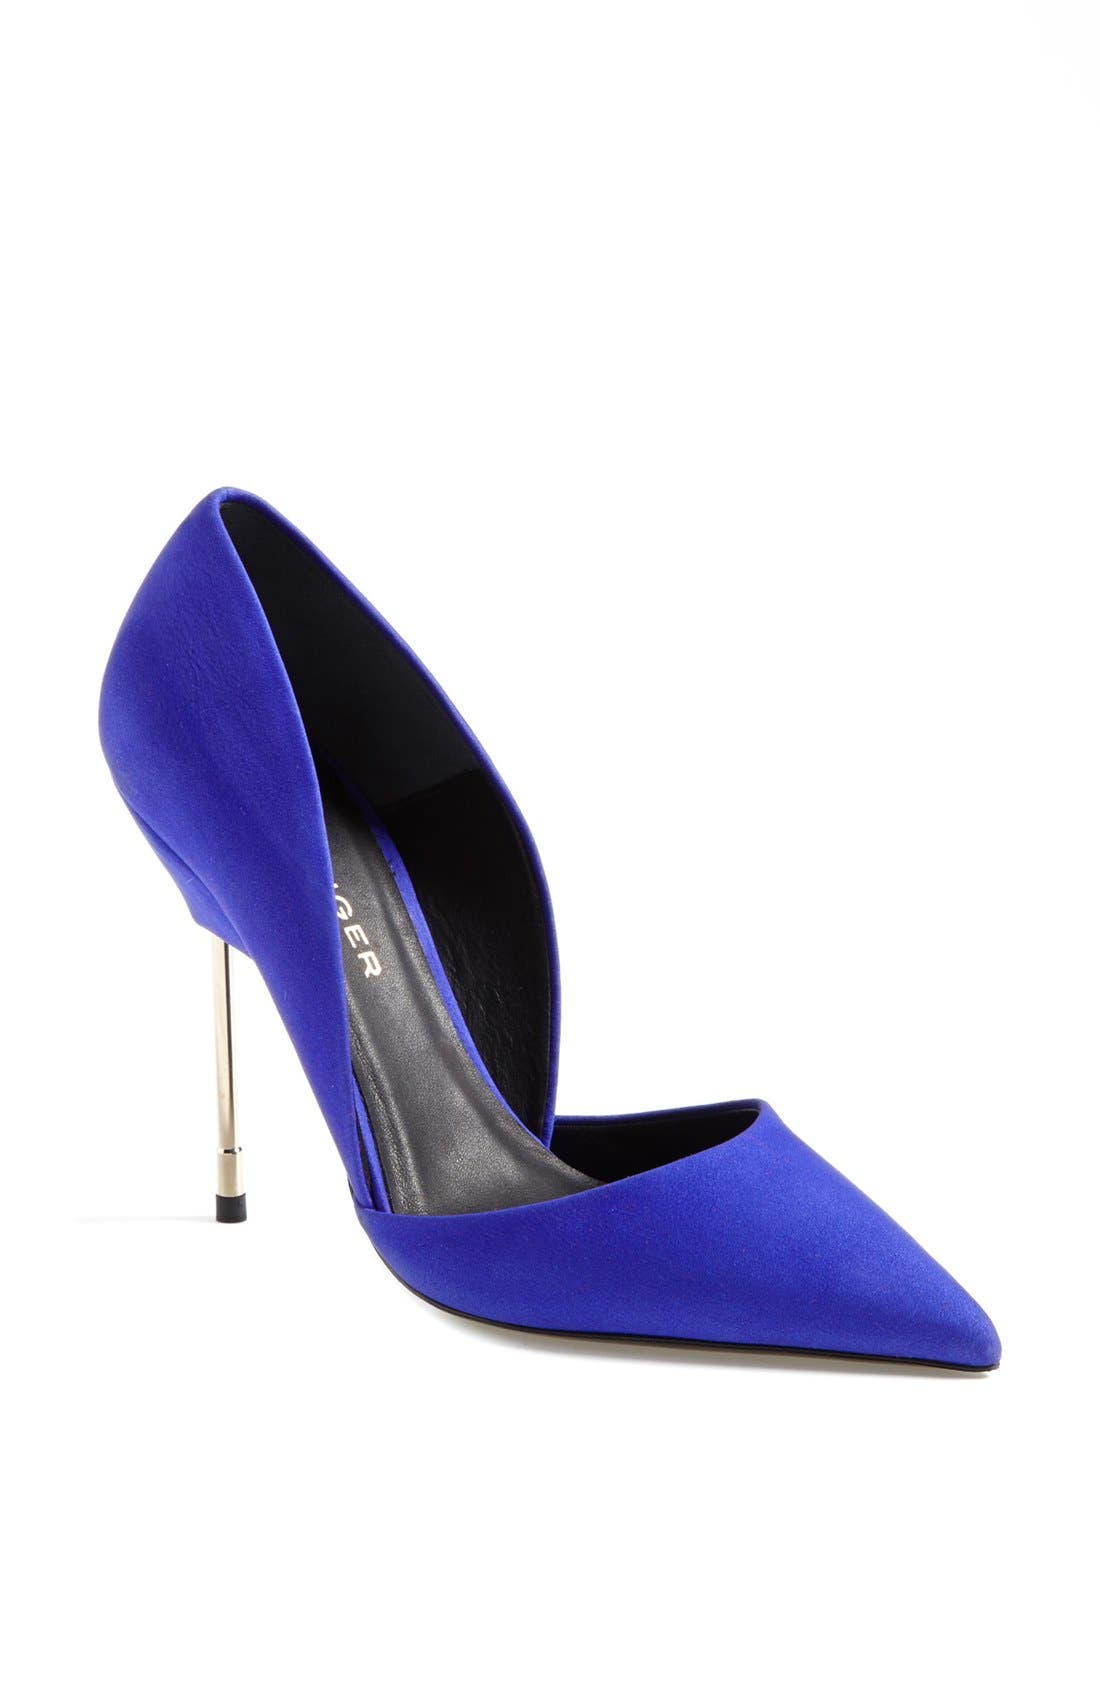 Main Image - Kurt Geiger London 'Bond' Suede d'Orsay Pump